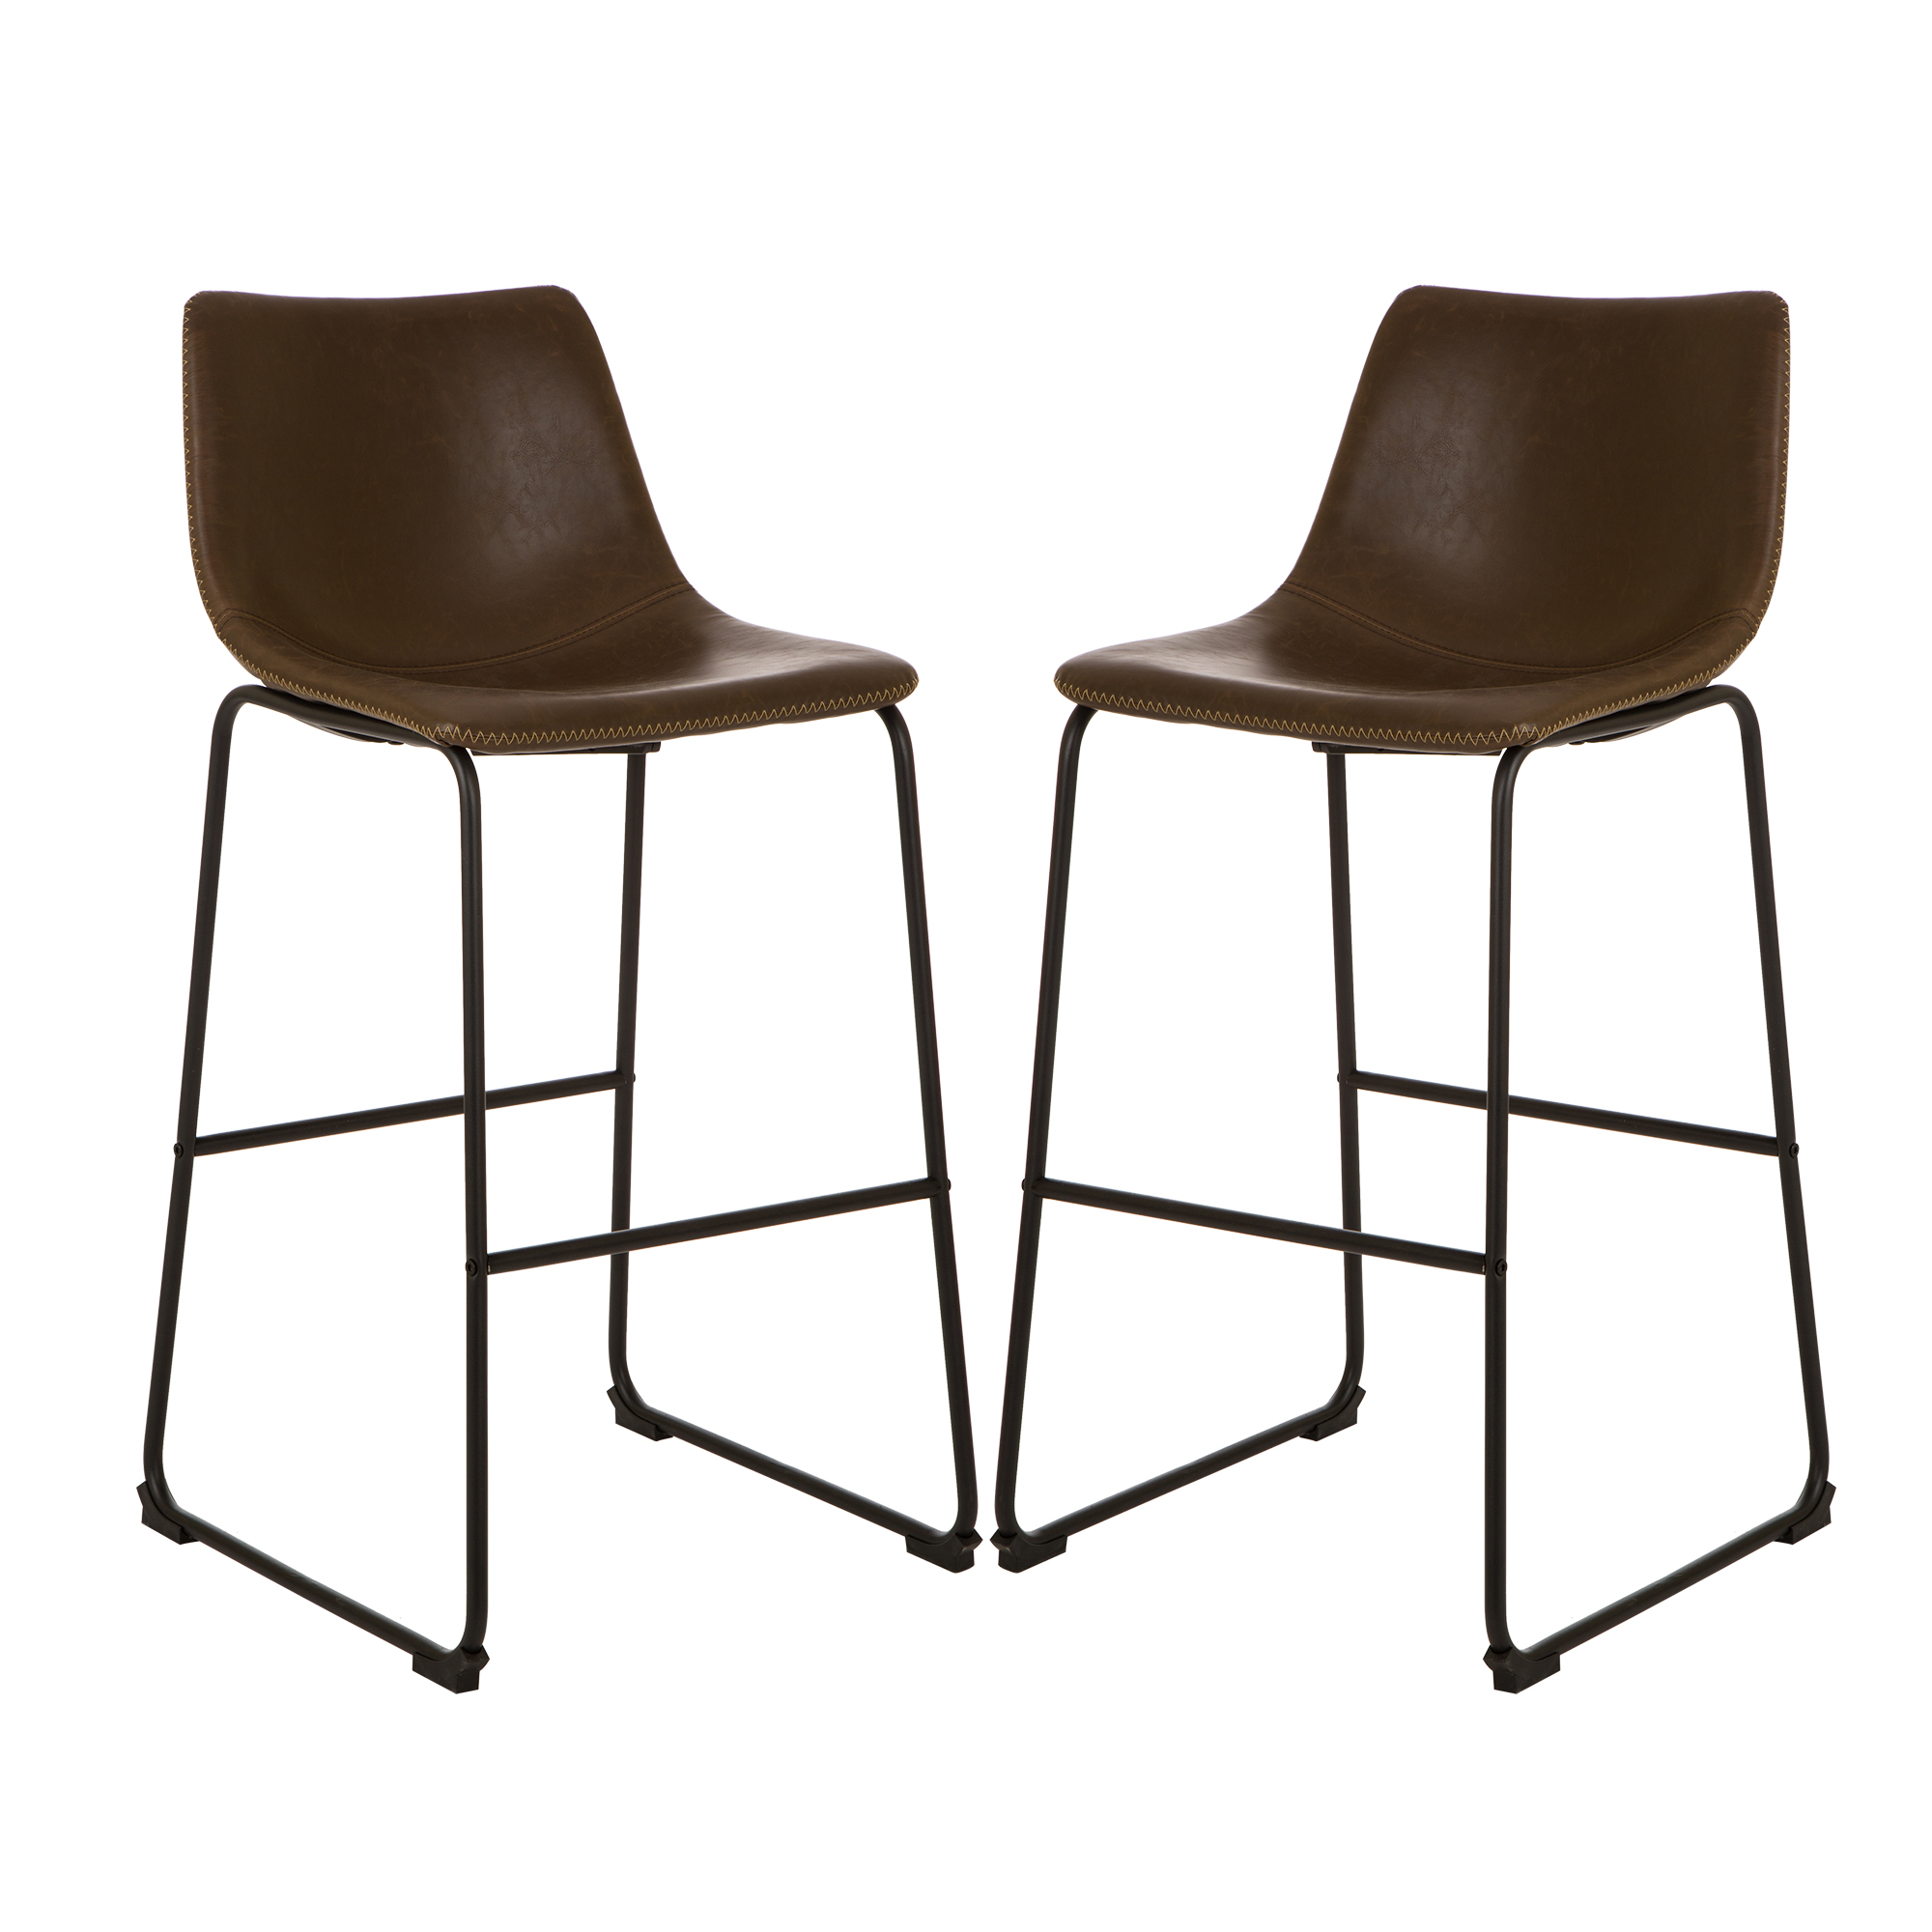 Glitzhome Retro Chrome Dining Kitchen Chairs Leatherette Bar Stool Leather  Seat Set of 2